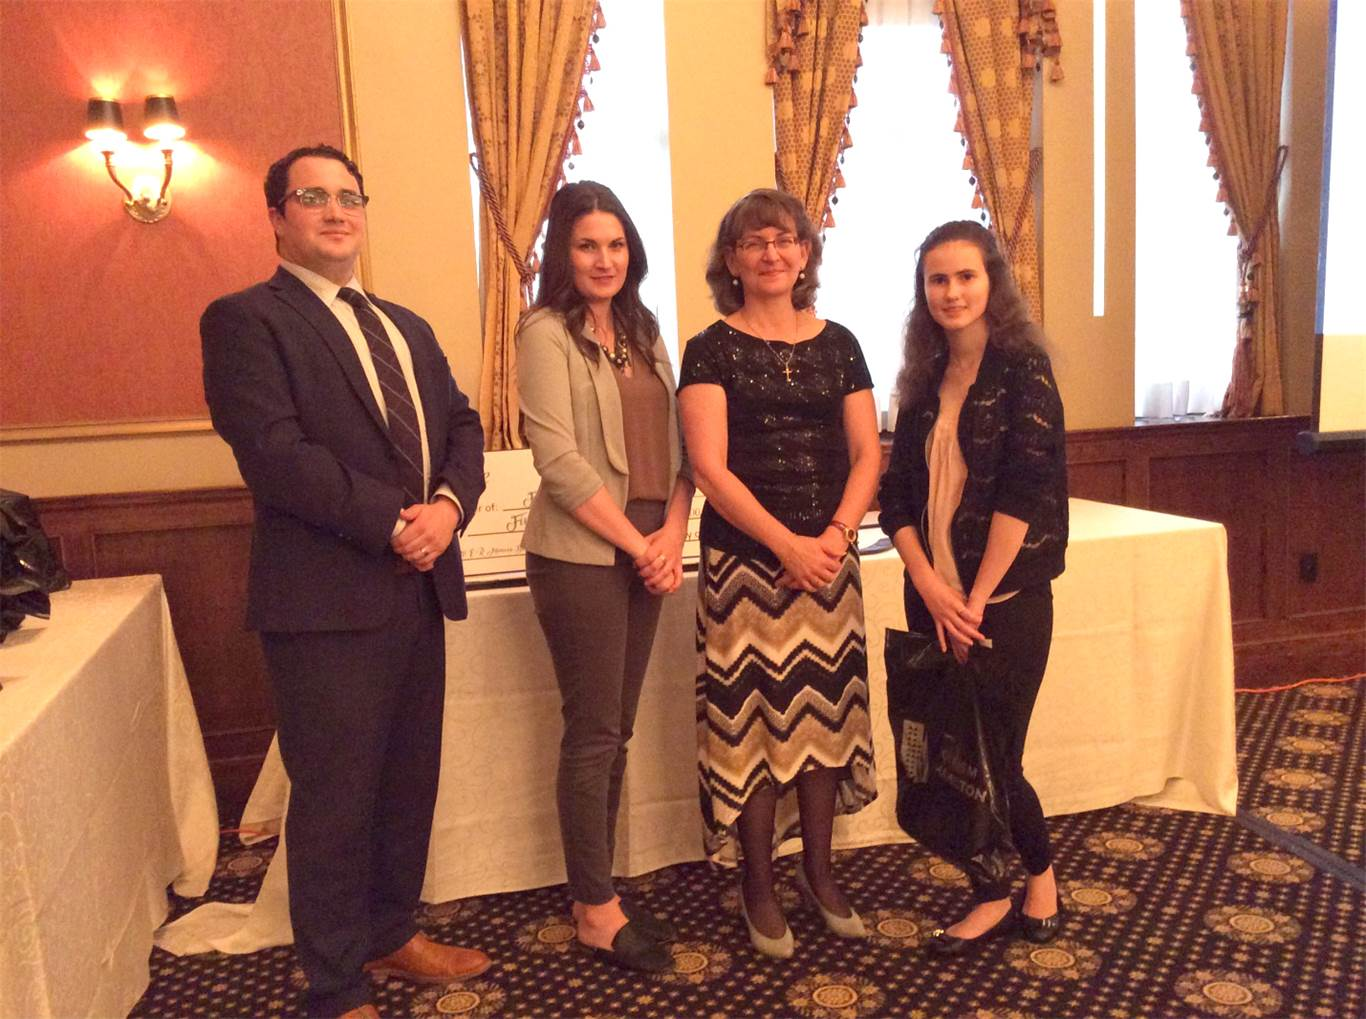 Pictured left to right:  Paul Demarco (from SimpsonWigle LAW LLP and judge for the competition), Natalie Reid (from Mohawk College and judge for the competition), Mary Monaco (Sponsor of the Program), and Hailey D'Angela.